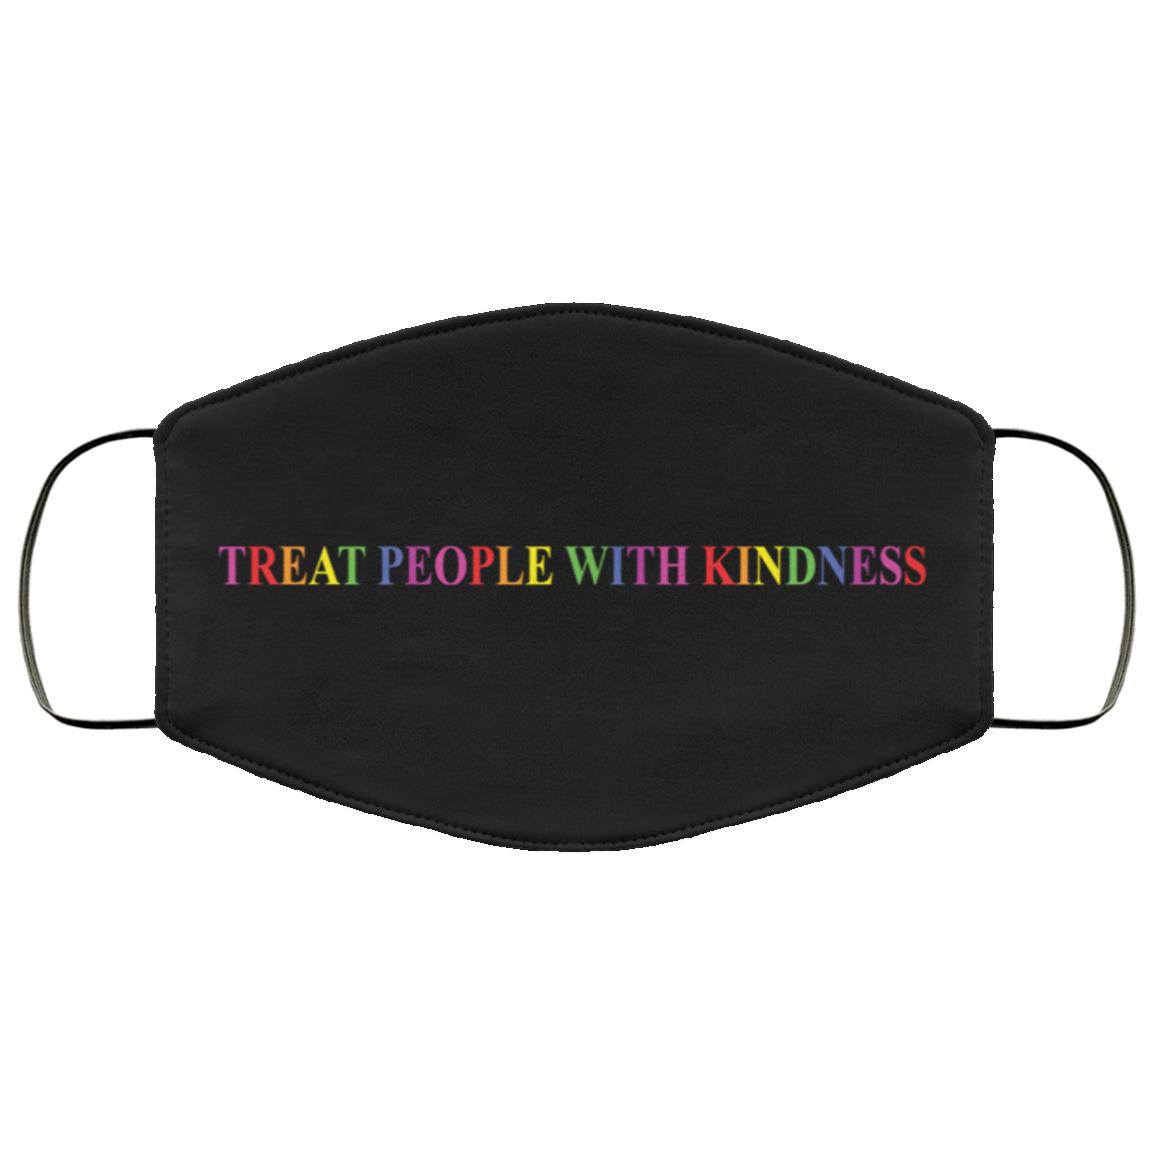 Harry Styles Treat people with kindness mask black